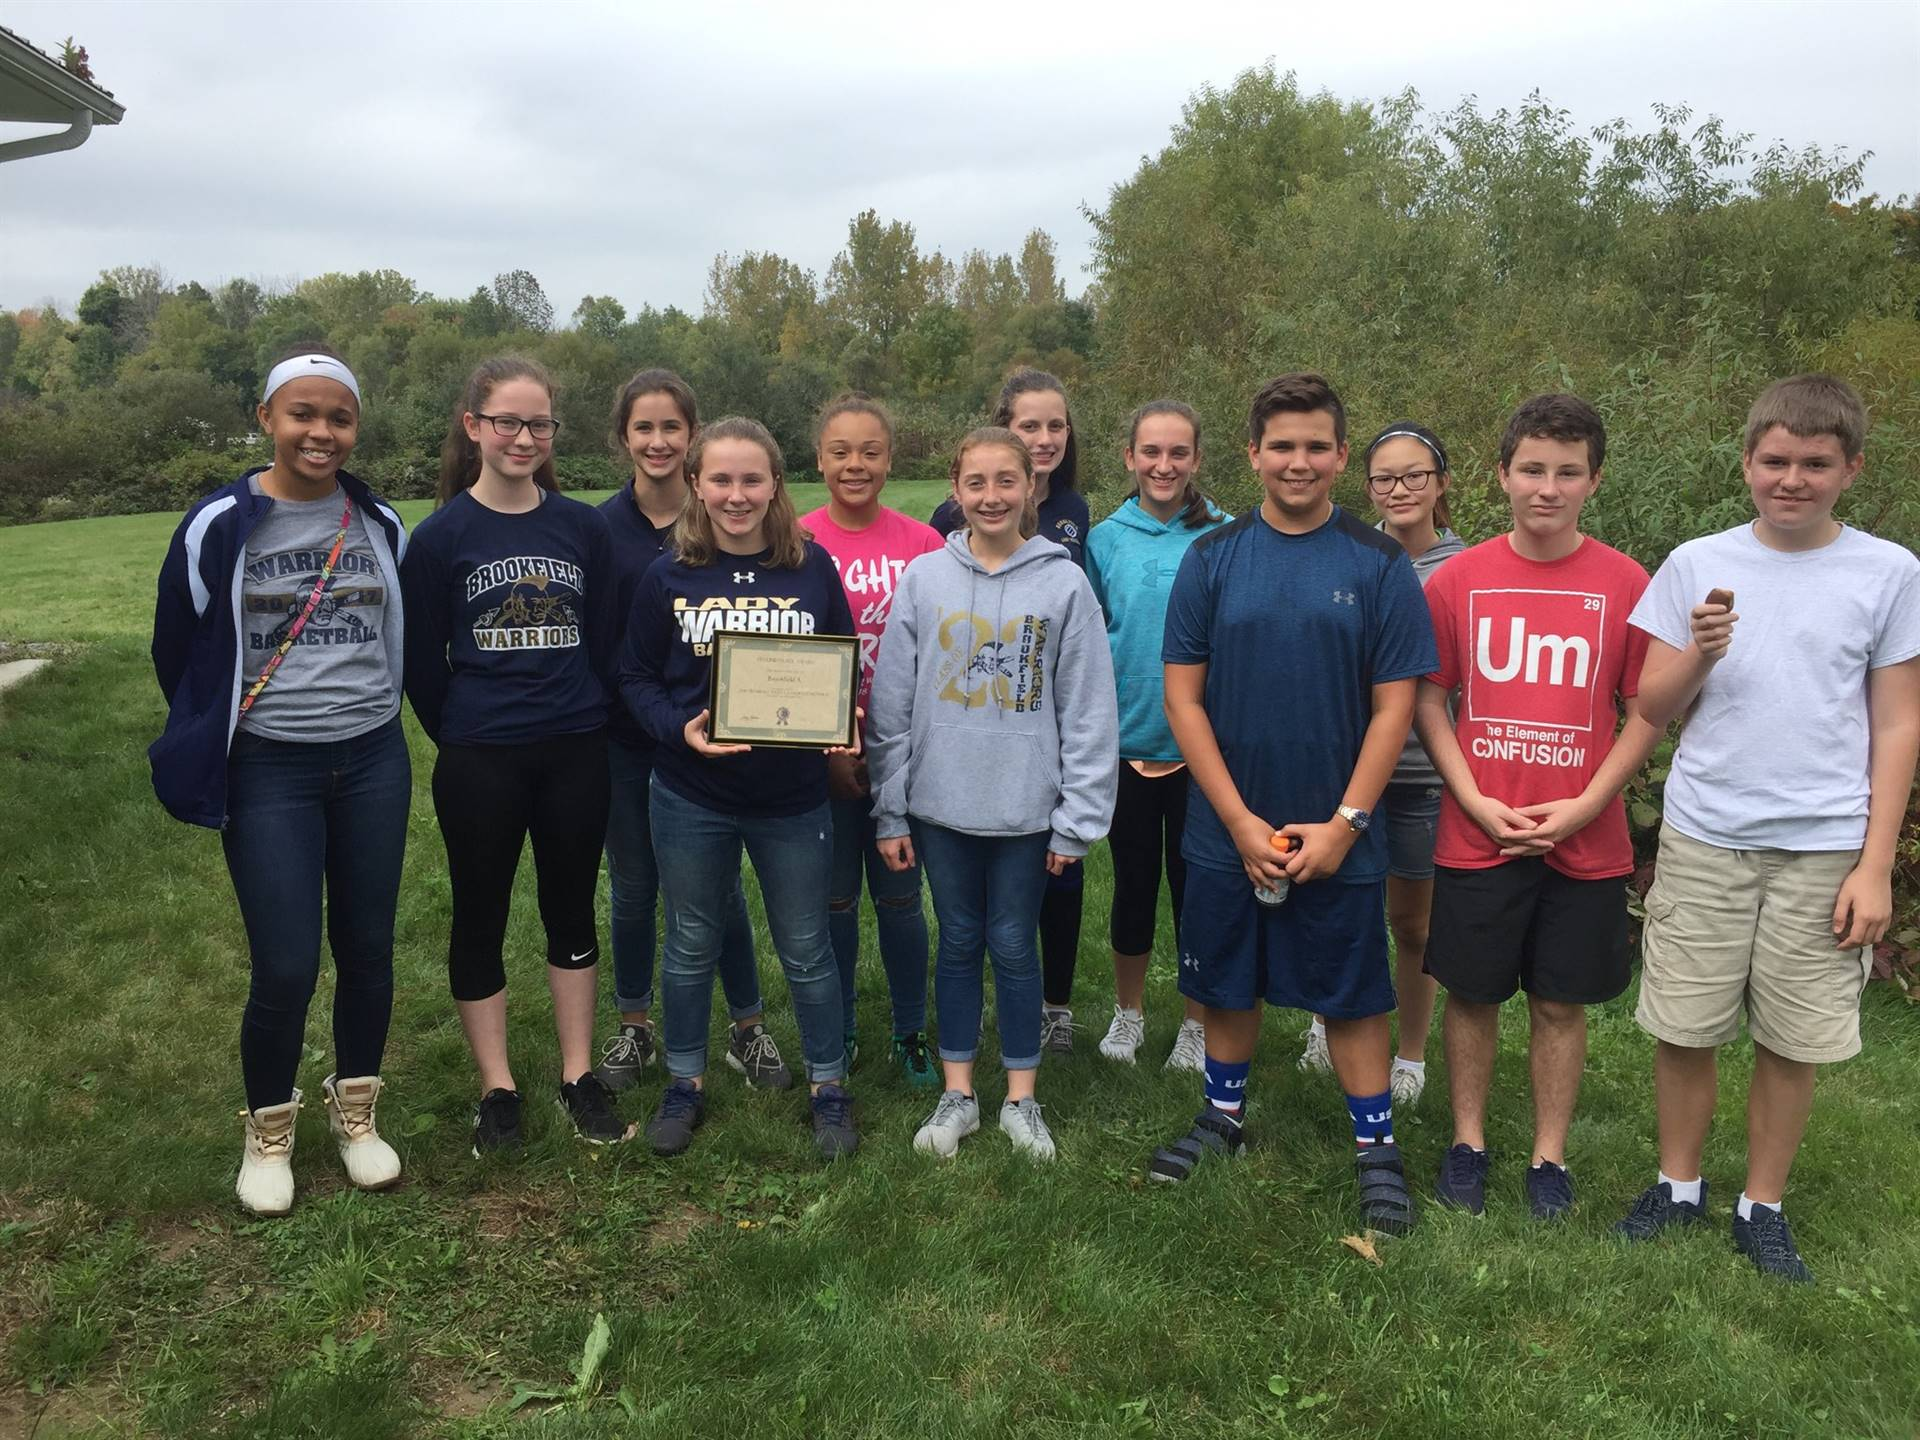 BMS Envirothon Team finished 2nd in the 2018 Trumbull County Envirothon